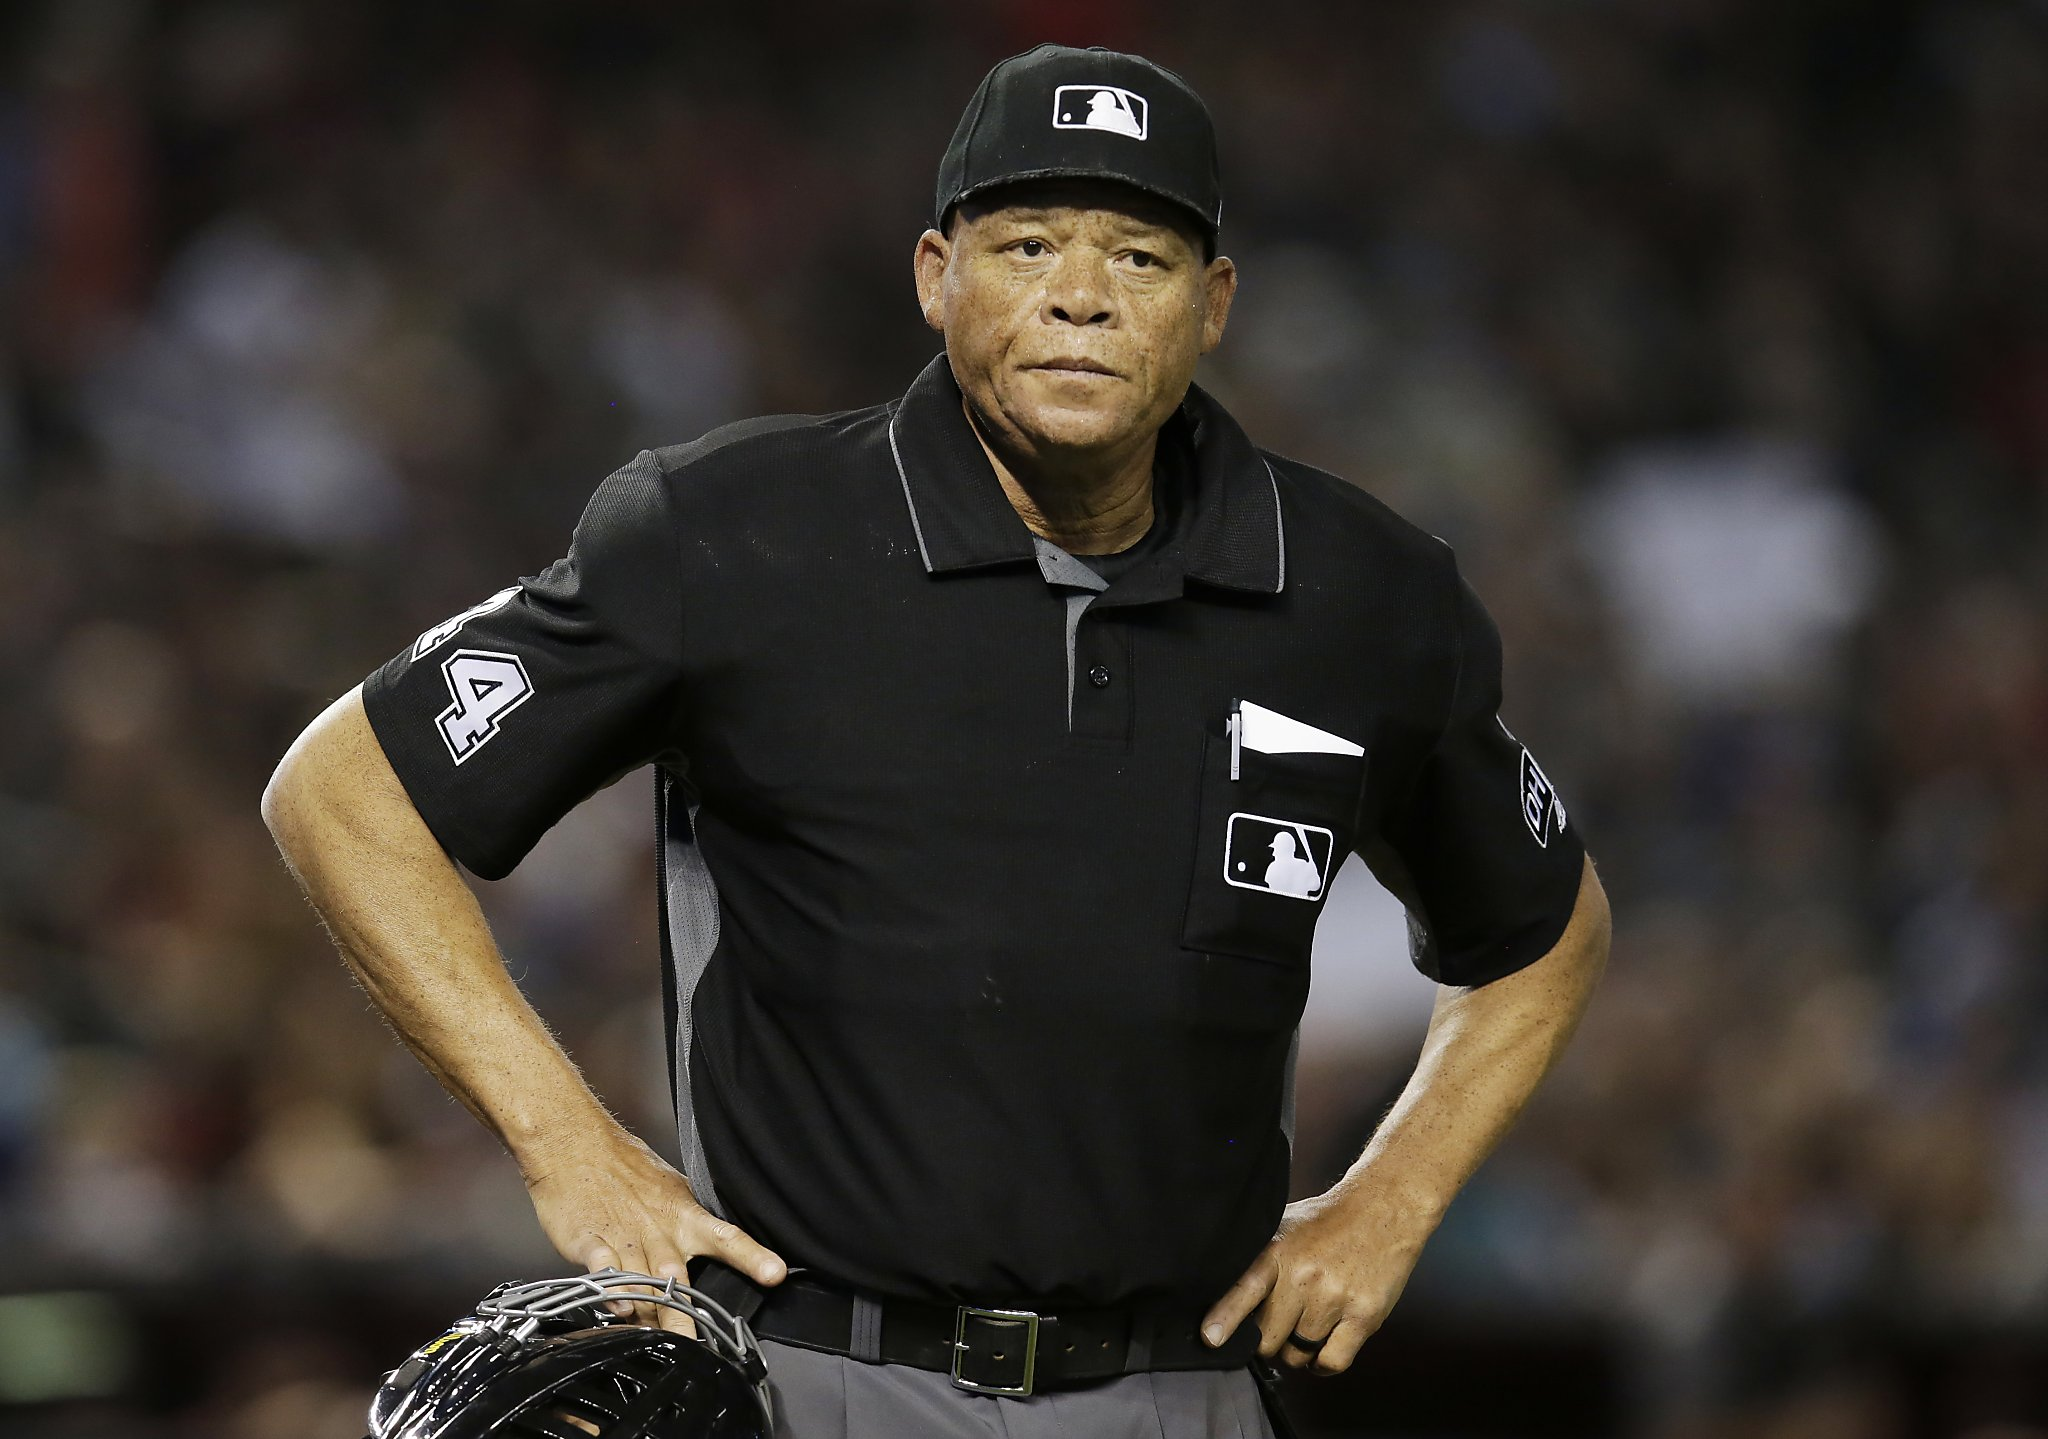 MLB appoints Kerwin Danley as 1st black umpire crew chief